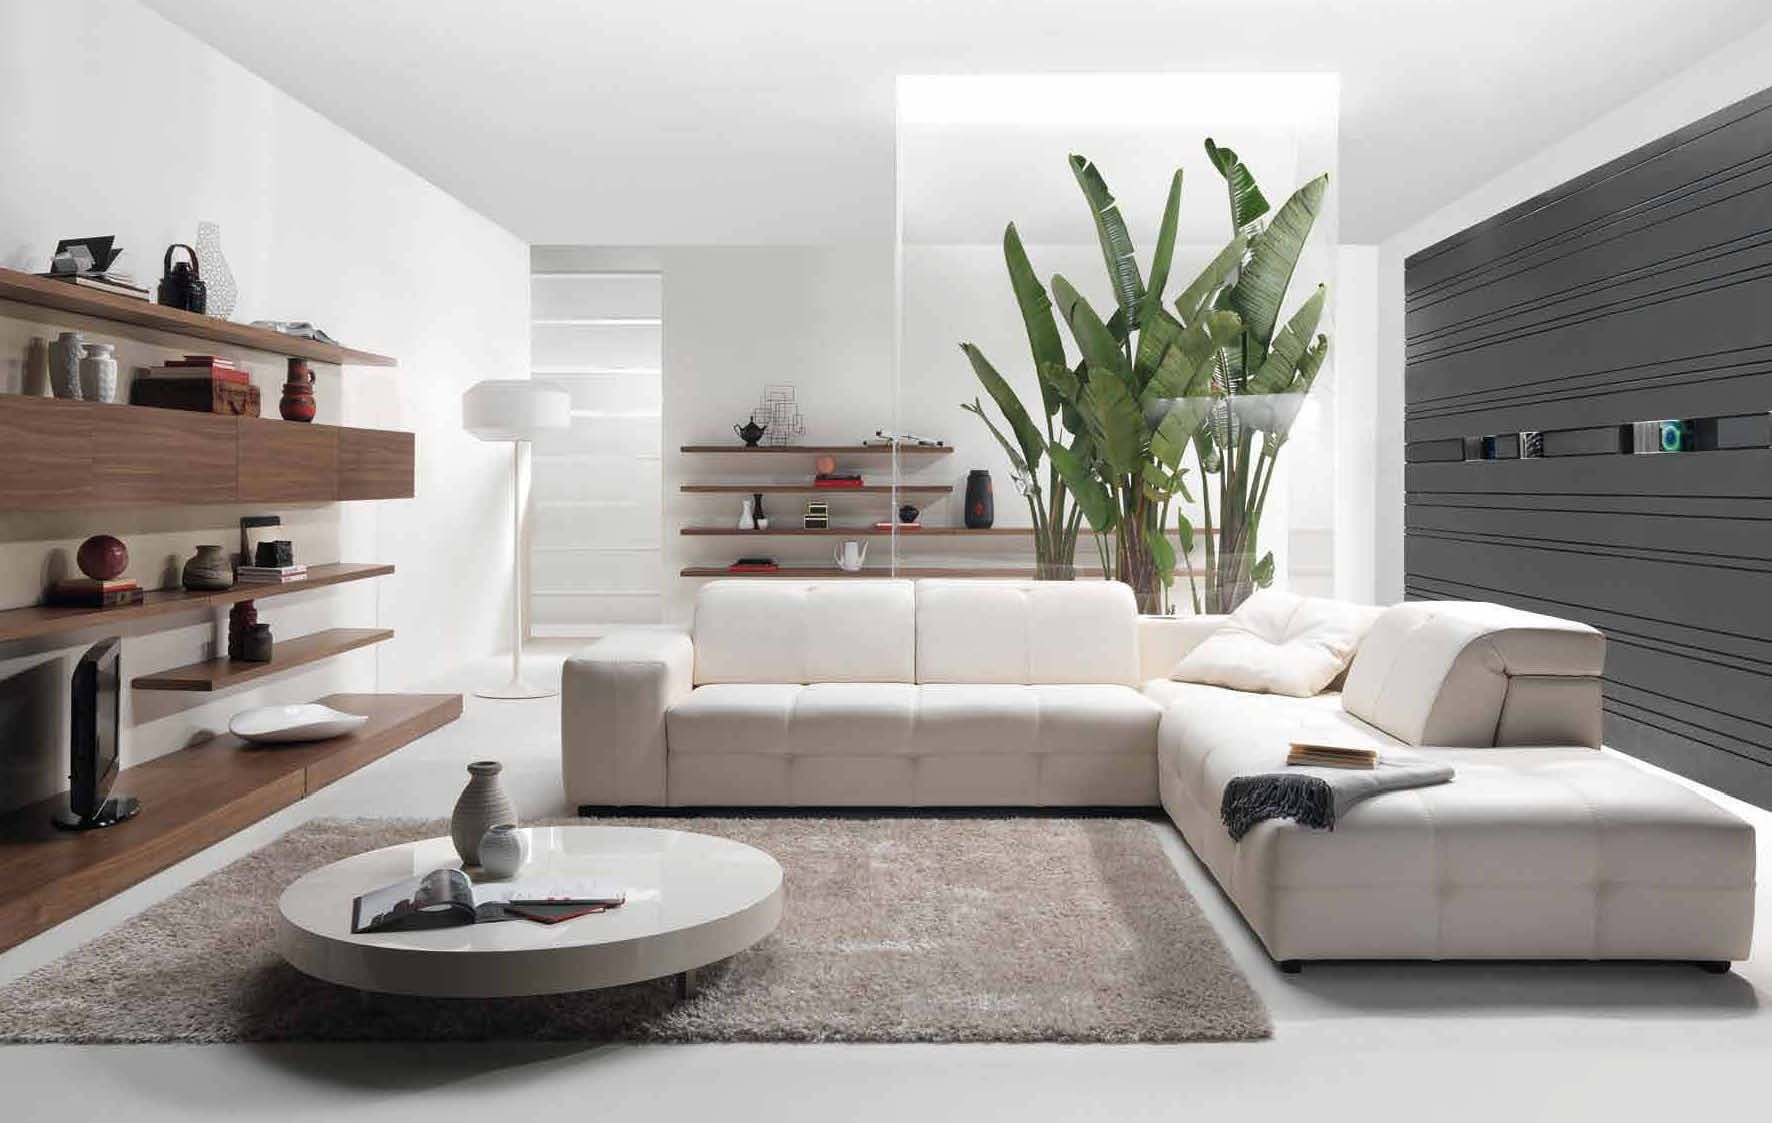 20 Gorgeous Contemporary Living Room Design Ideas | Living rooms ...